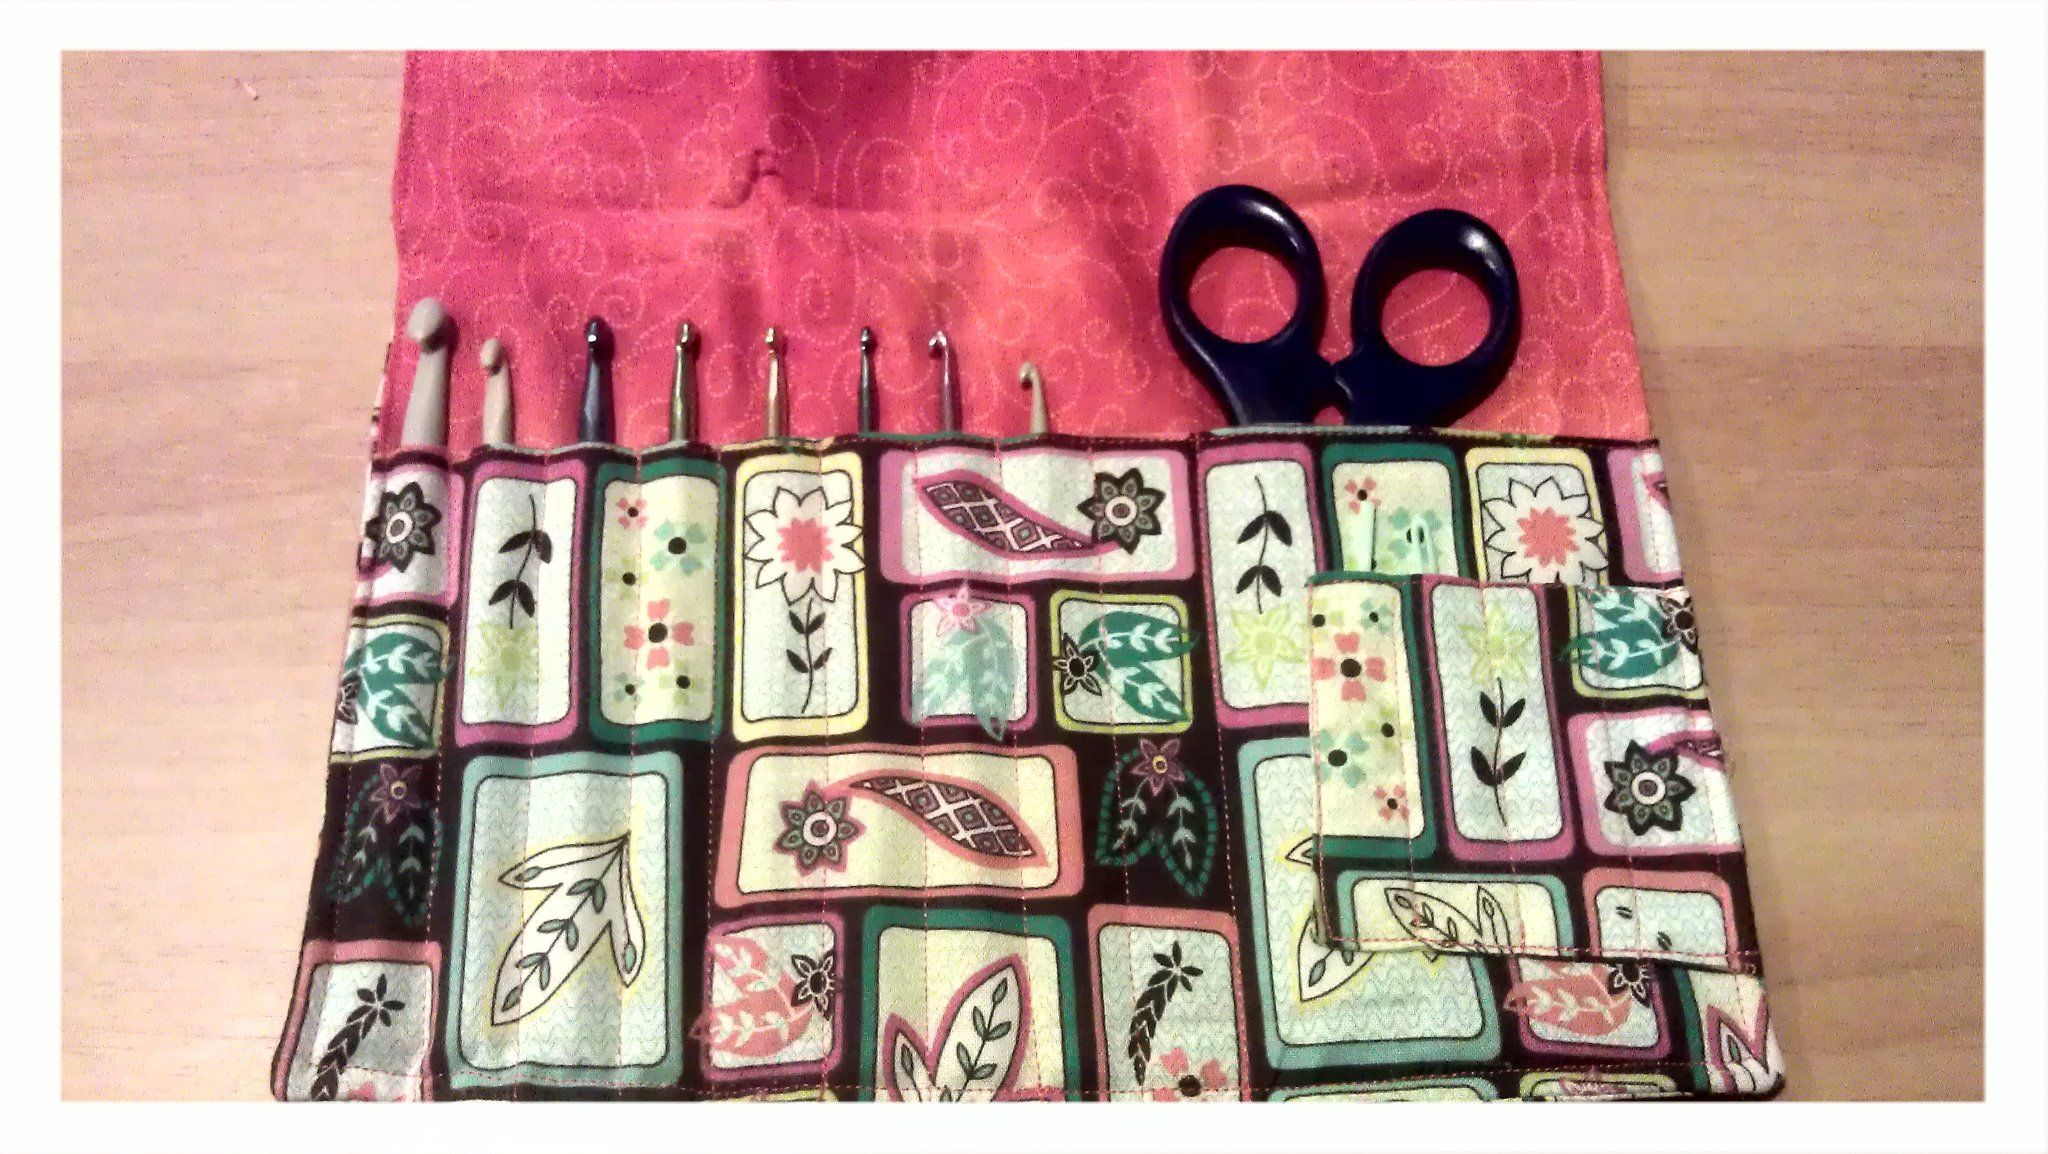 Finished sewing a crochet hook holder :)